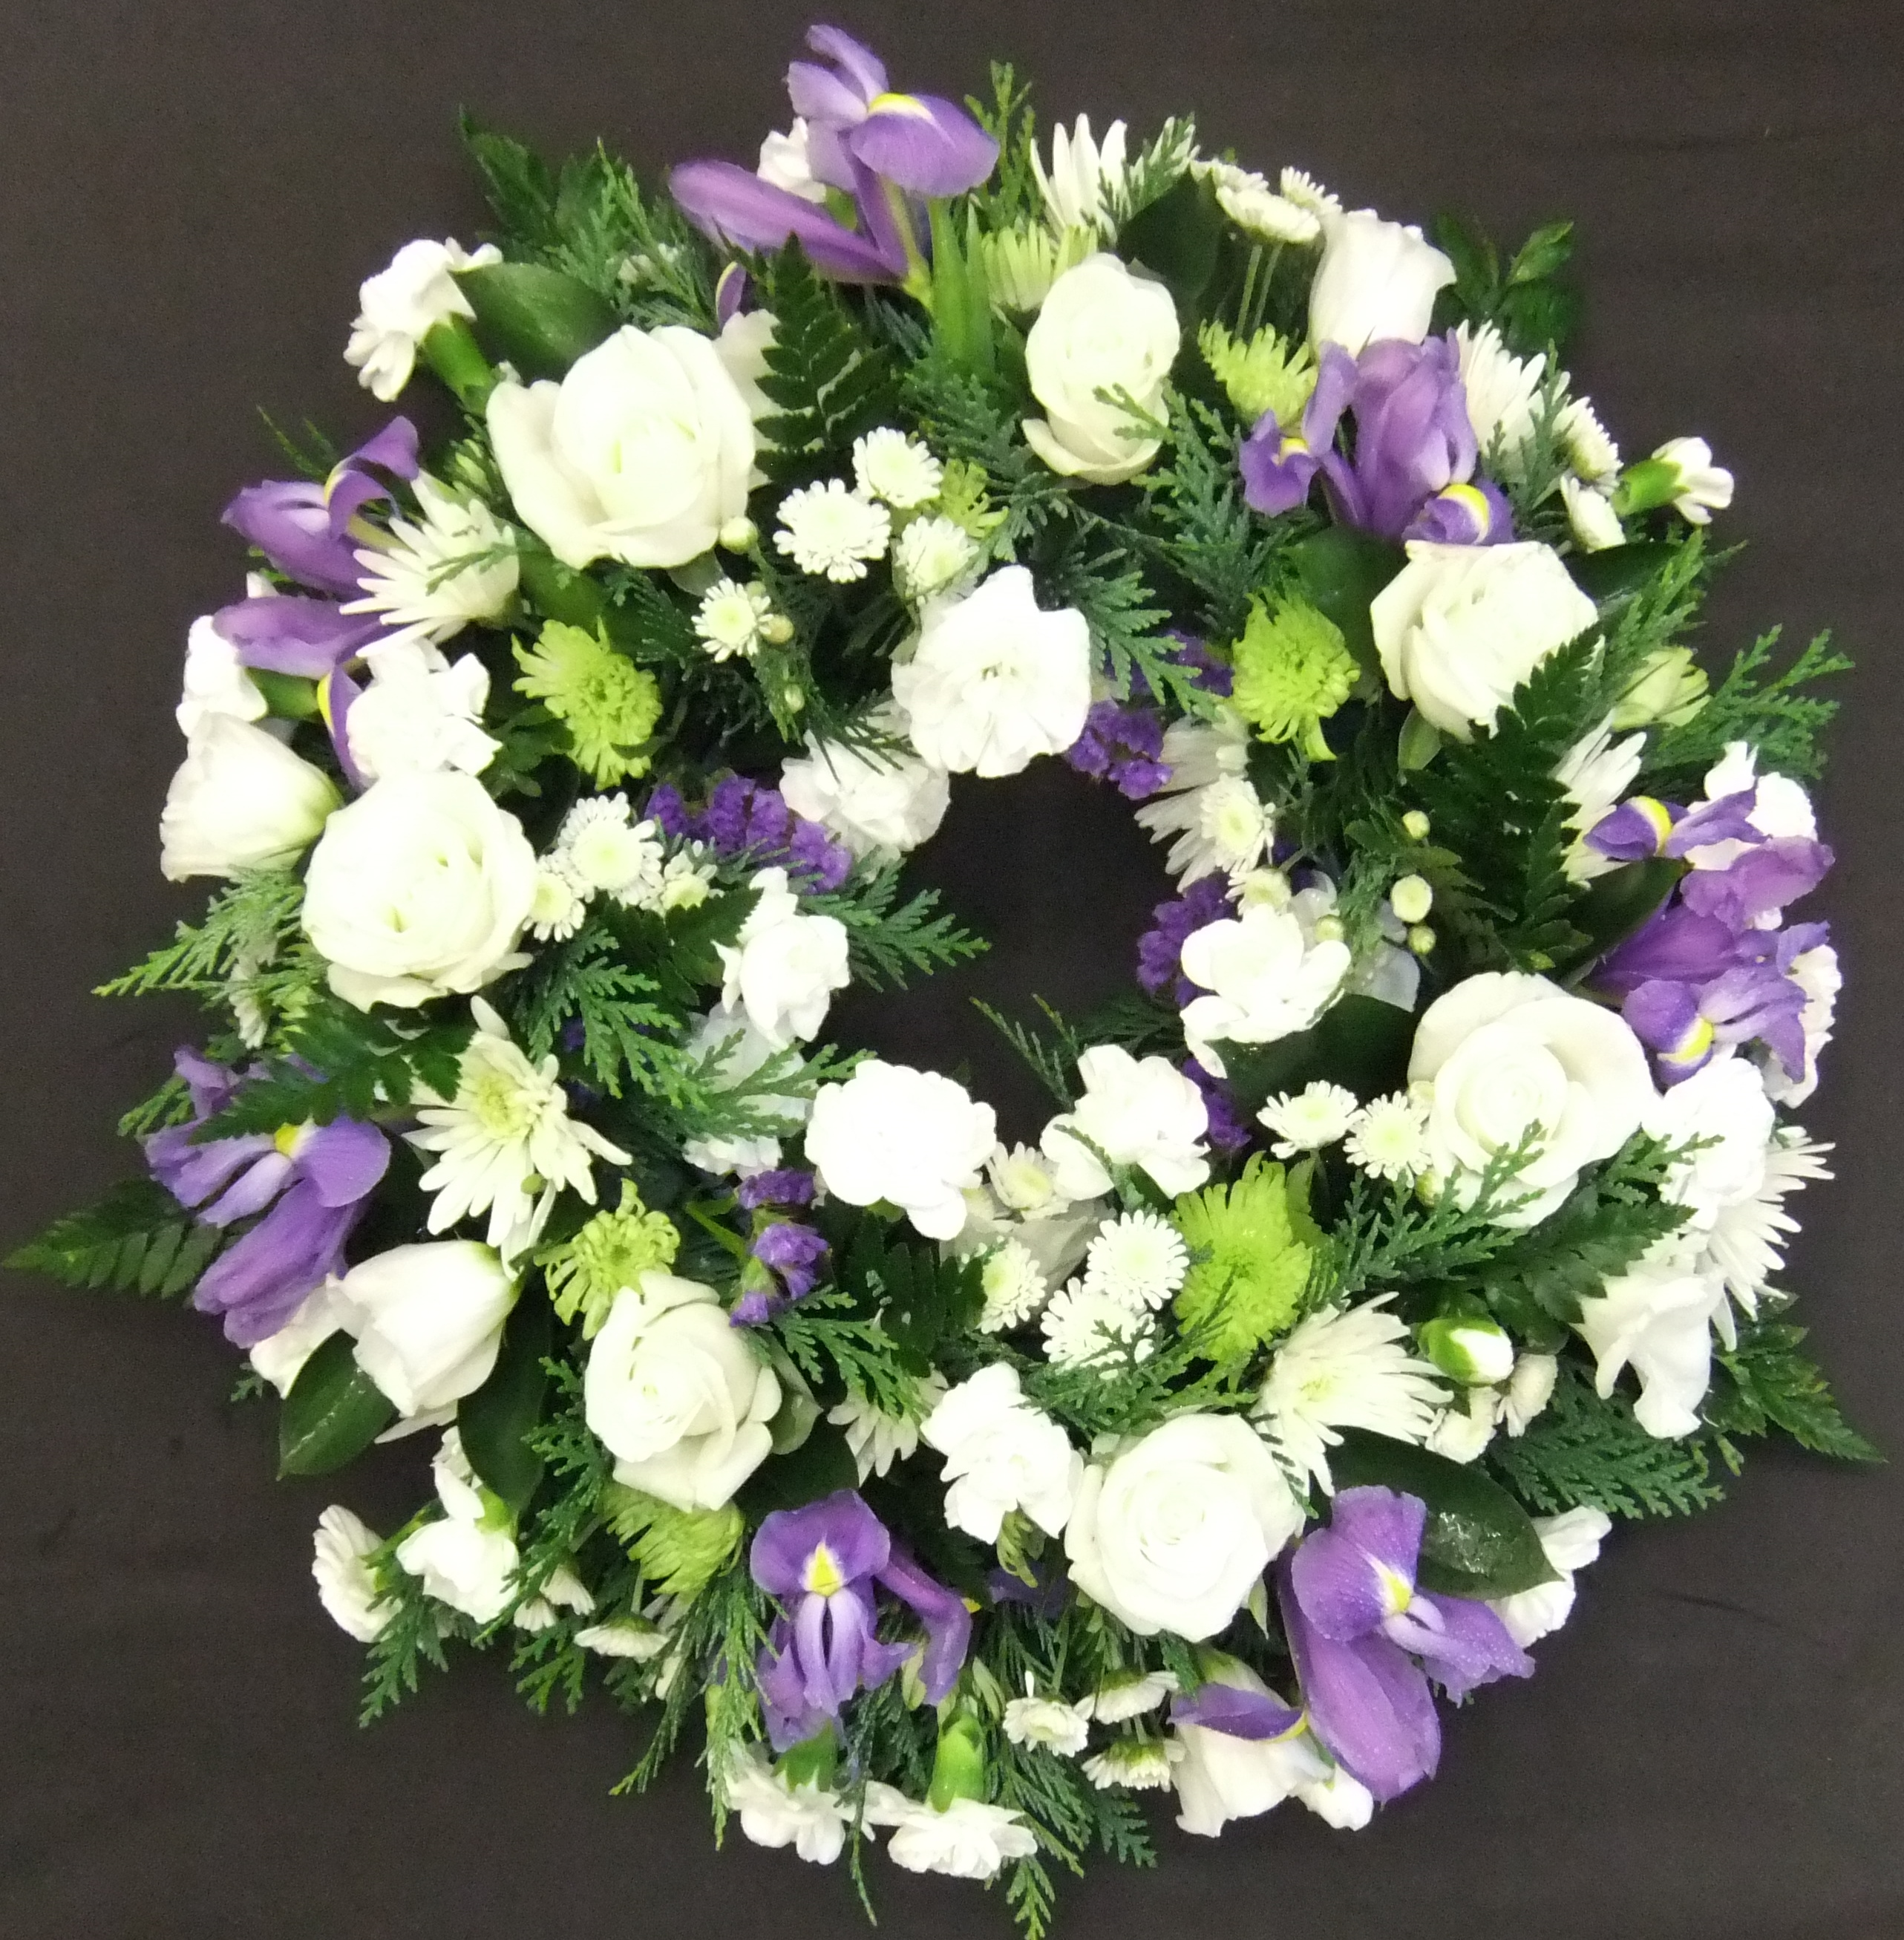 Flowers for funerals john thomas florist traditional wreath in white purple and green izmirmasajfo Choice Image